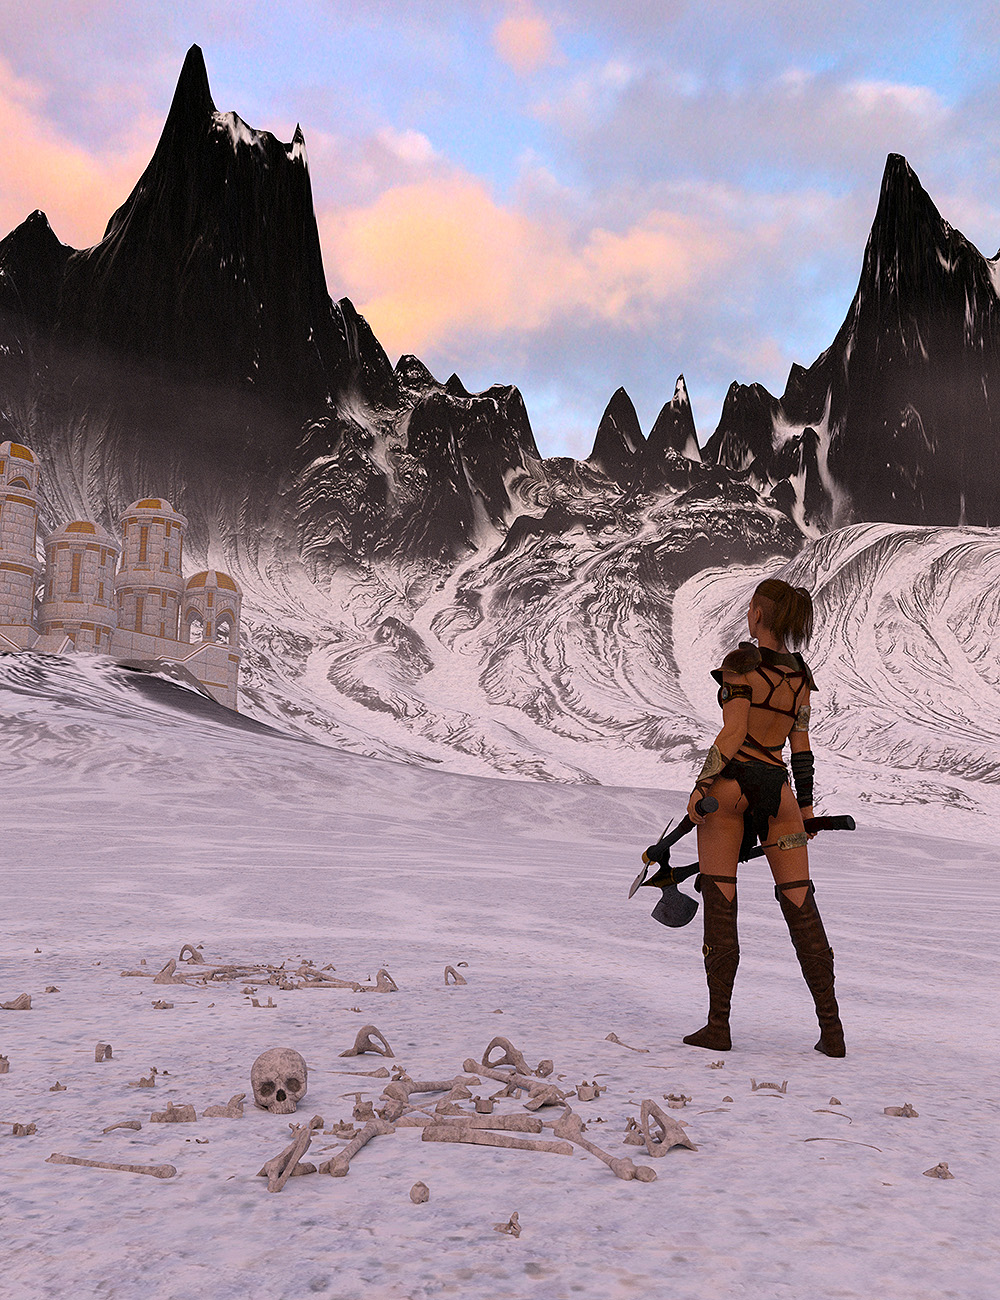 The Naurfire Mountains by: Orestes Graphics, 3D Models by Daz 3D